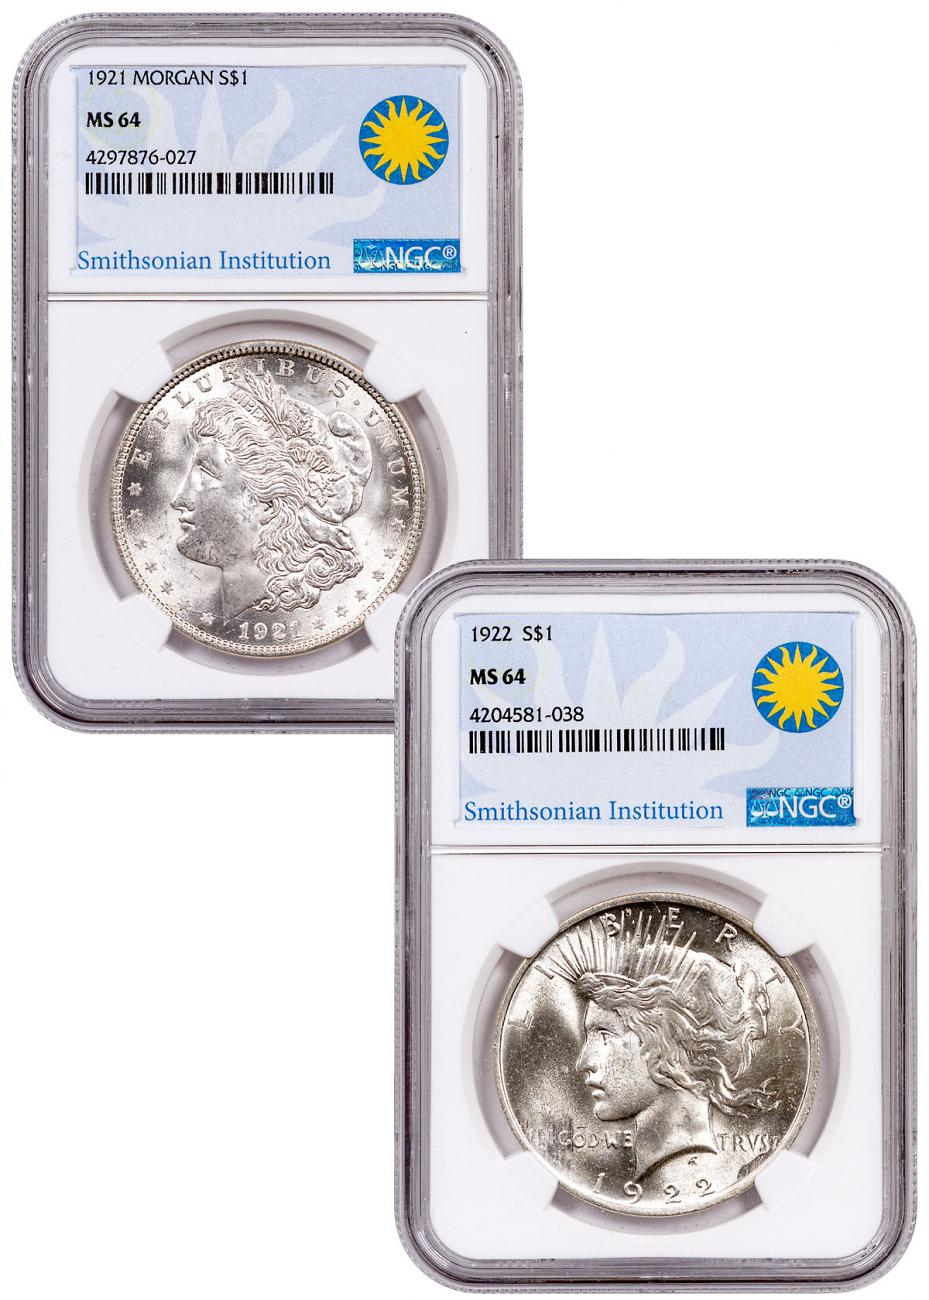 2-Coin 1921 Morgan + 1922 Peace Dollar Set - NGC MS64